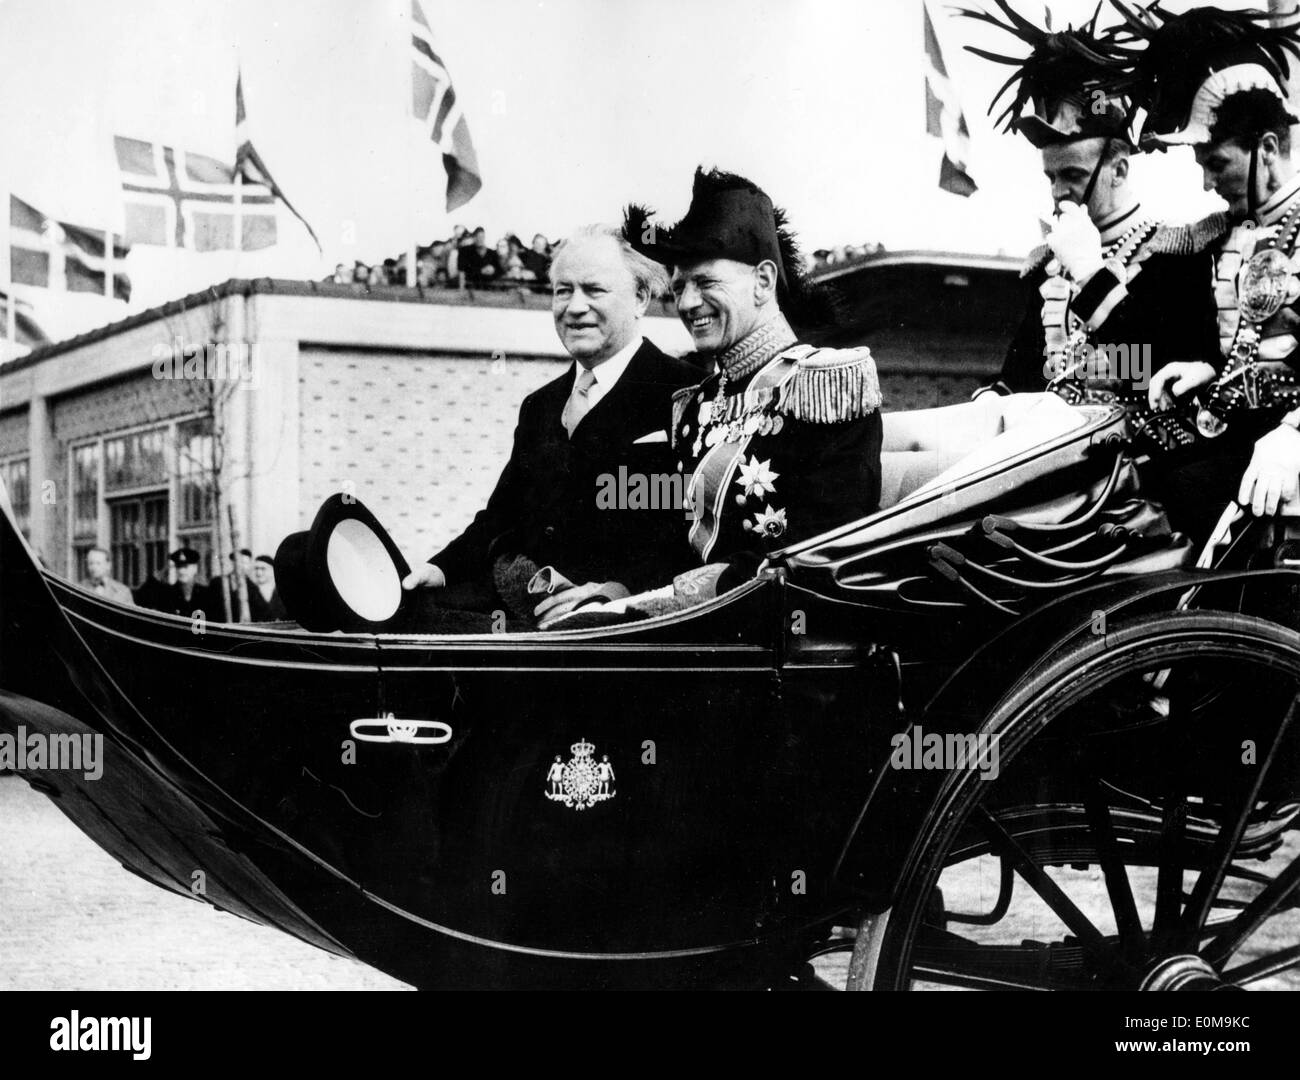 Apr 06, 1954; Copenhagen, Denmark; President ASGEIR ASGEIRSSON of Iceland, accompanied by his wife, arrived in Copenhagen - Stock Image